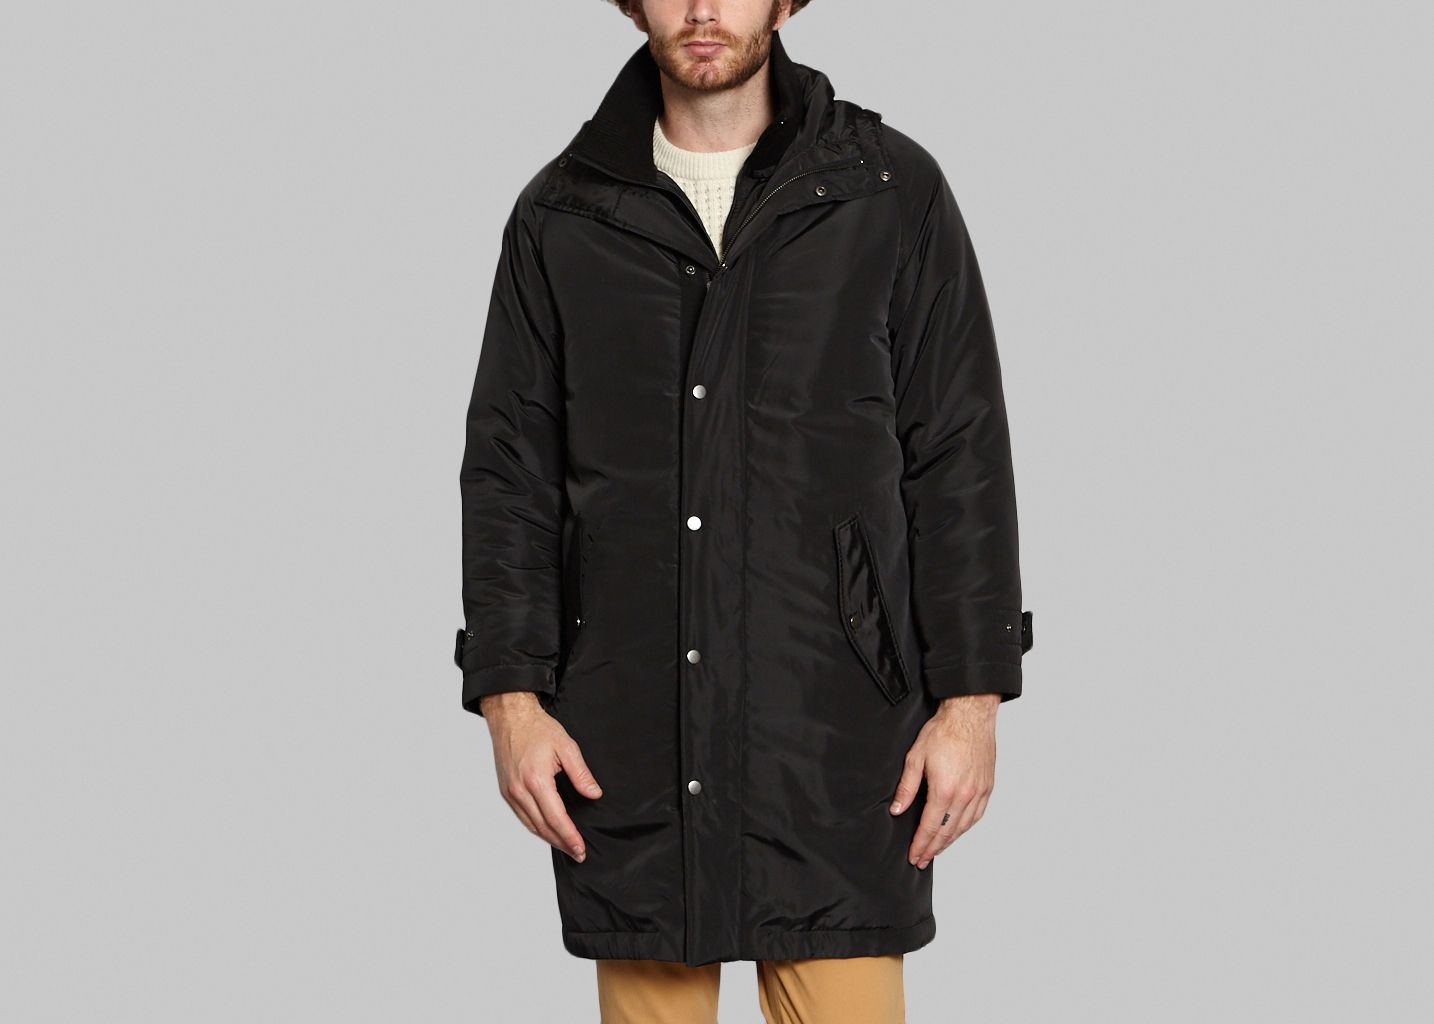 cd848396e4e851 Soldes Parka Sherpa Noir Paul   Joe à -50%   L Exception